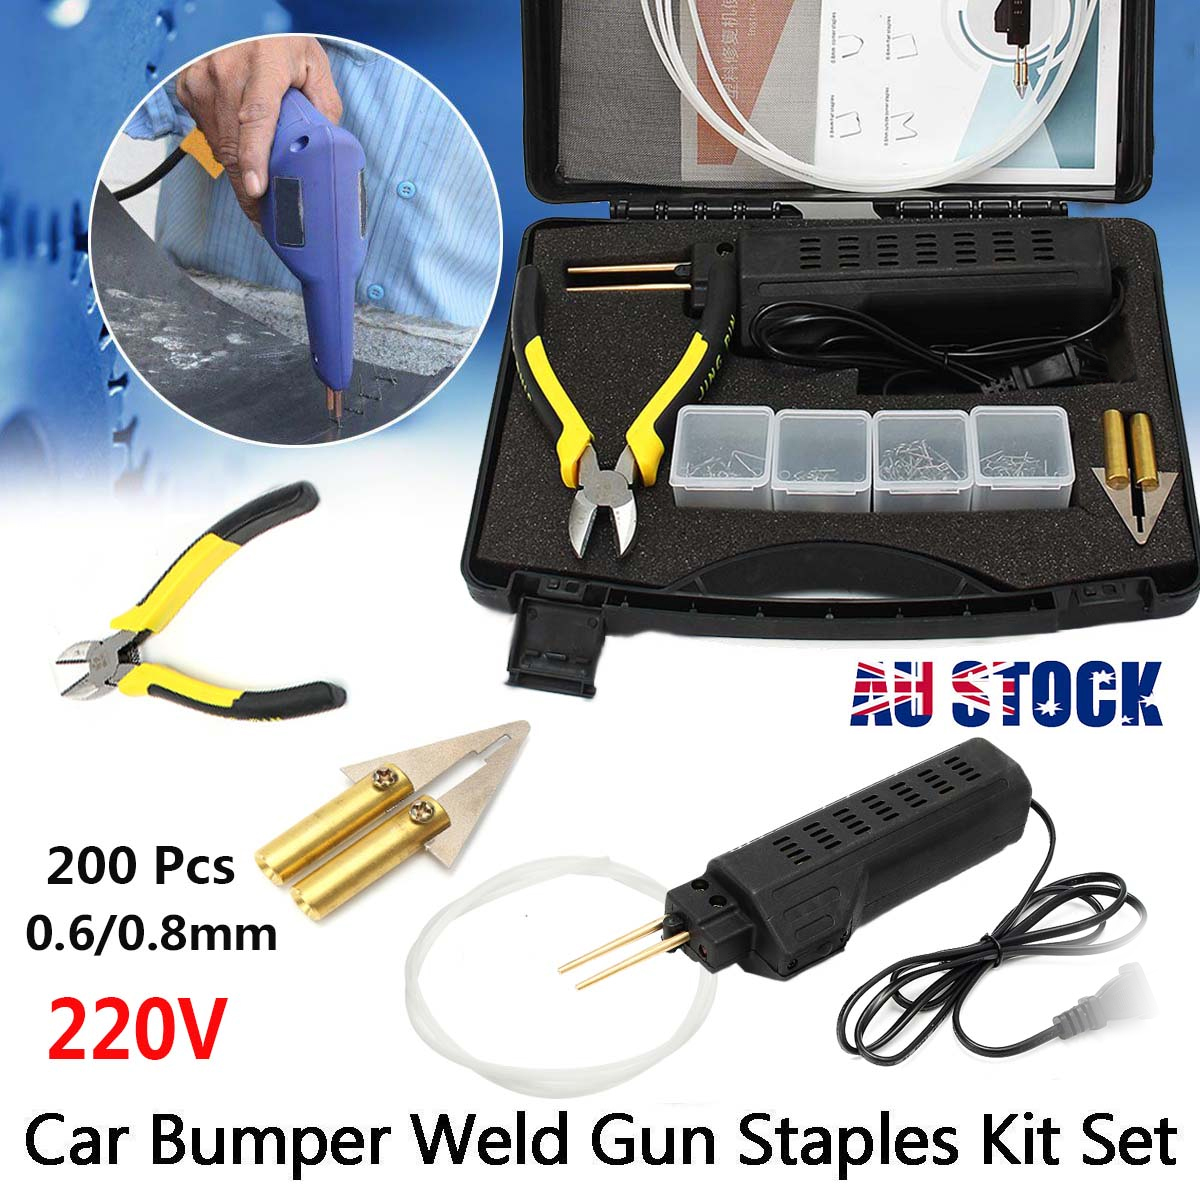 Hot Stapler Car Bumper for Fender Fairing for Welder for Gun Plastic Repair Kit 200 Staples Auto Body Soldering Iron welding torch repair kit 220v 50w stapler for bumper plastic w 500x staples for auto and car